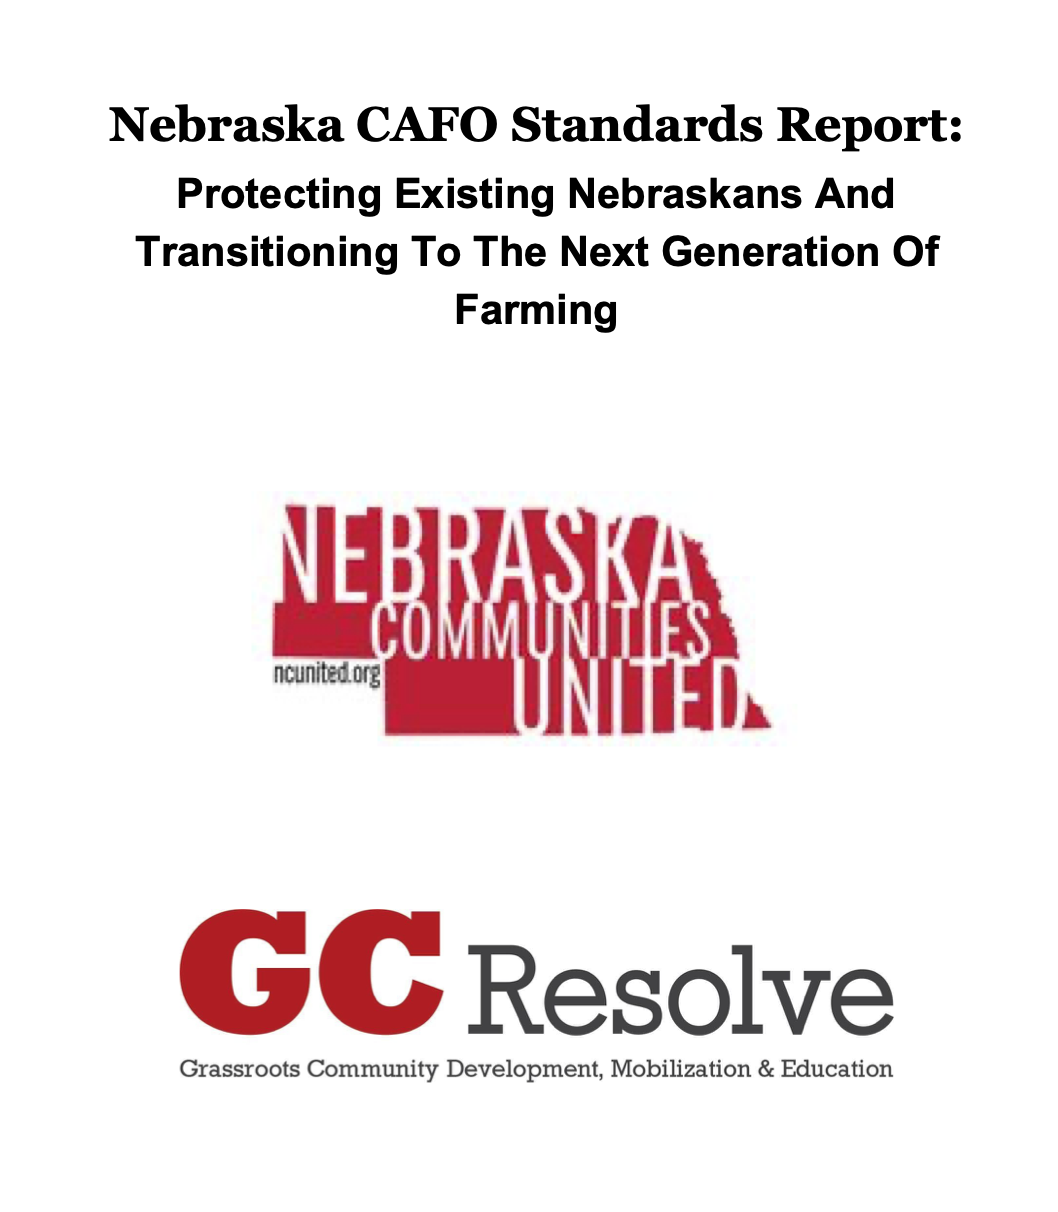 Nebraska_CAFO_Report_JPEG.png